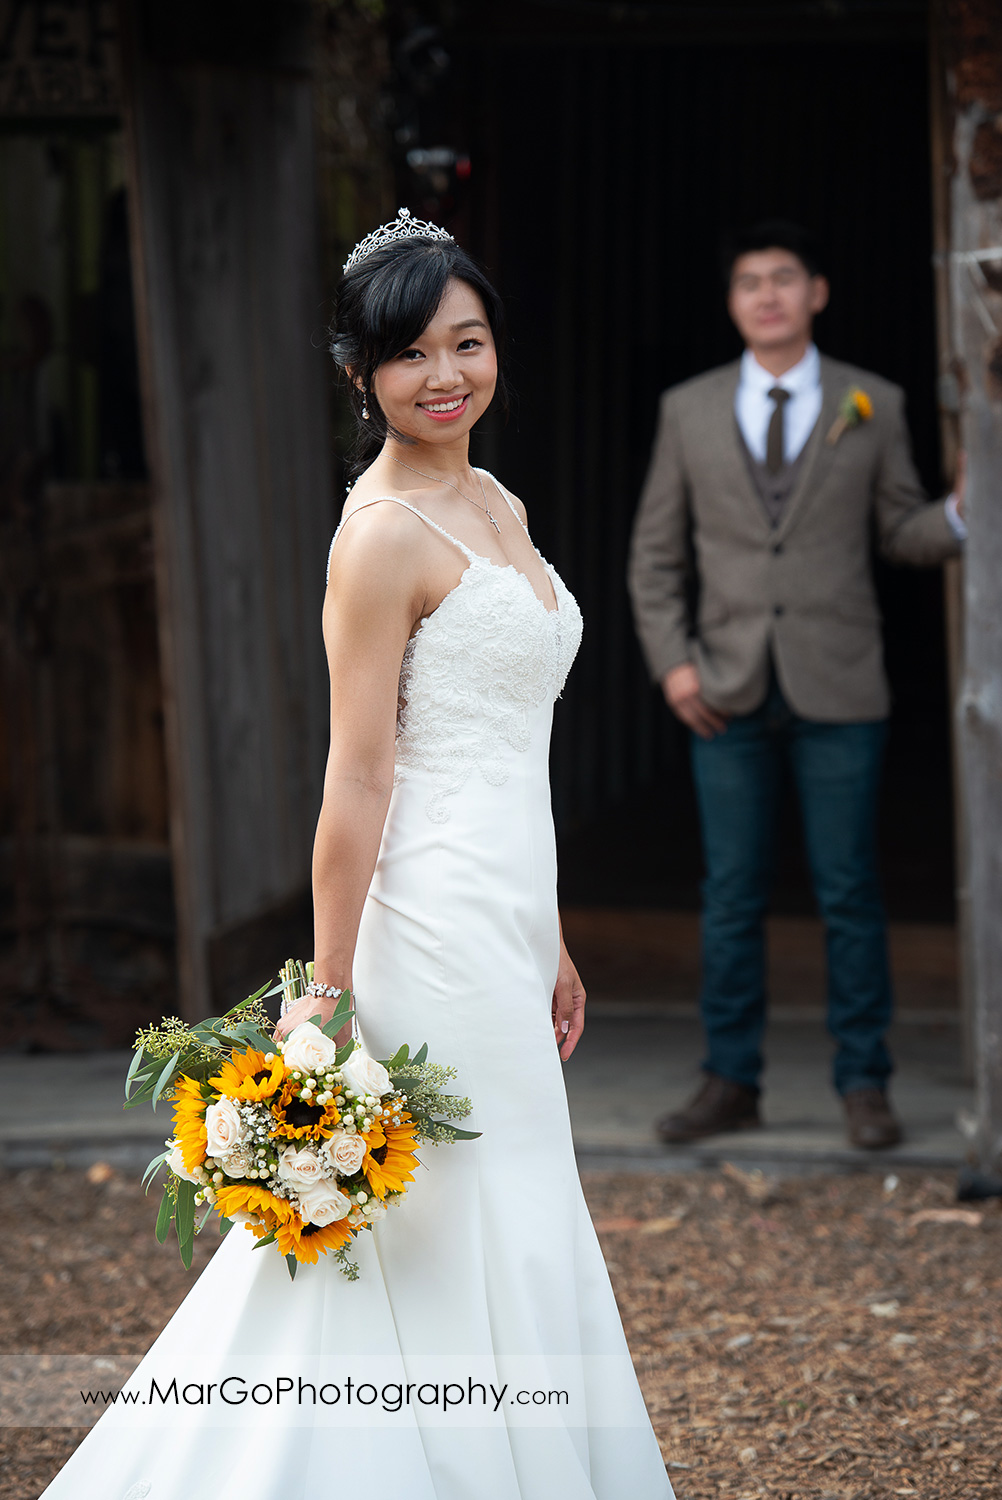 portrait of the bride holding yellow flower bouquet with groom in background at Long Branch Saloon & Farms in Half Moon Bay